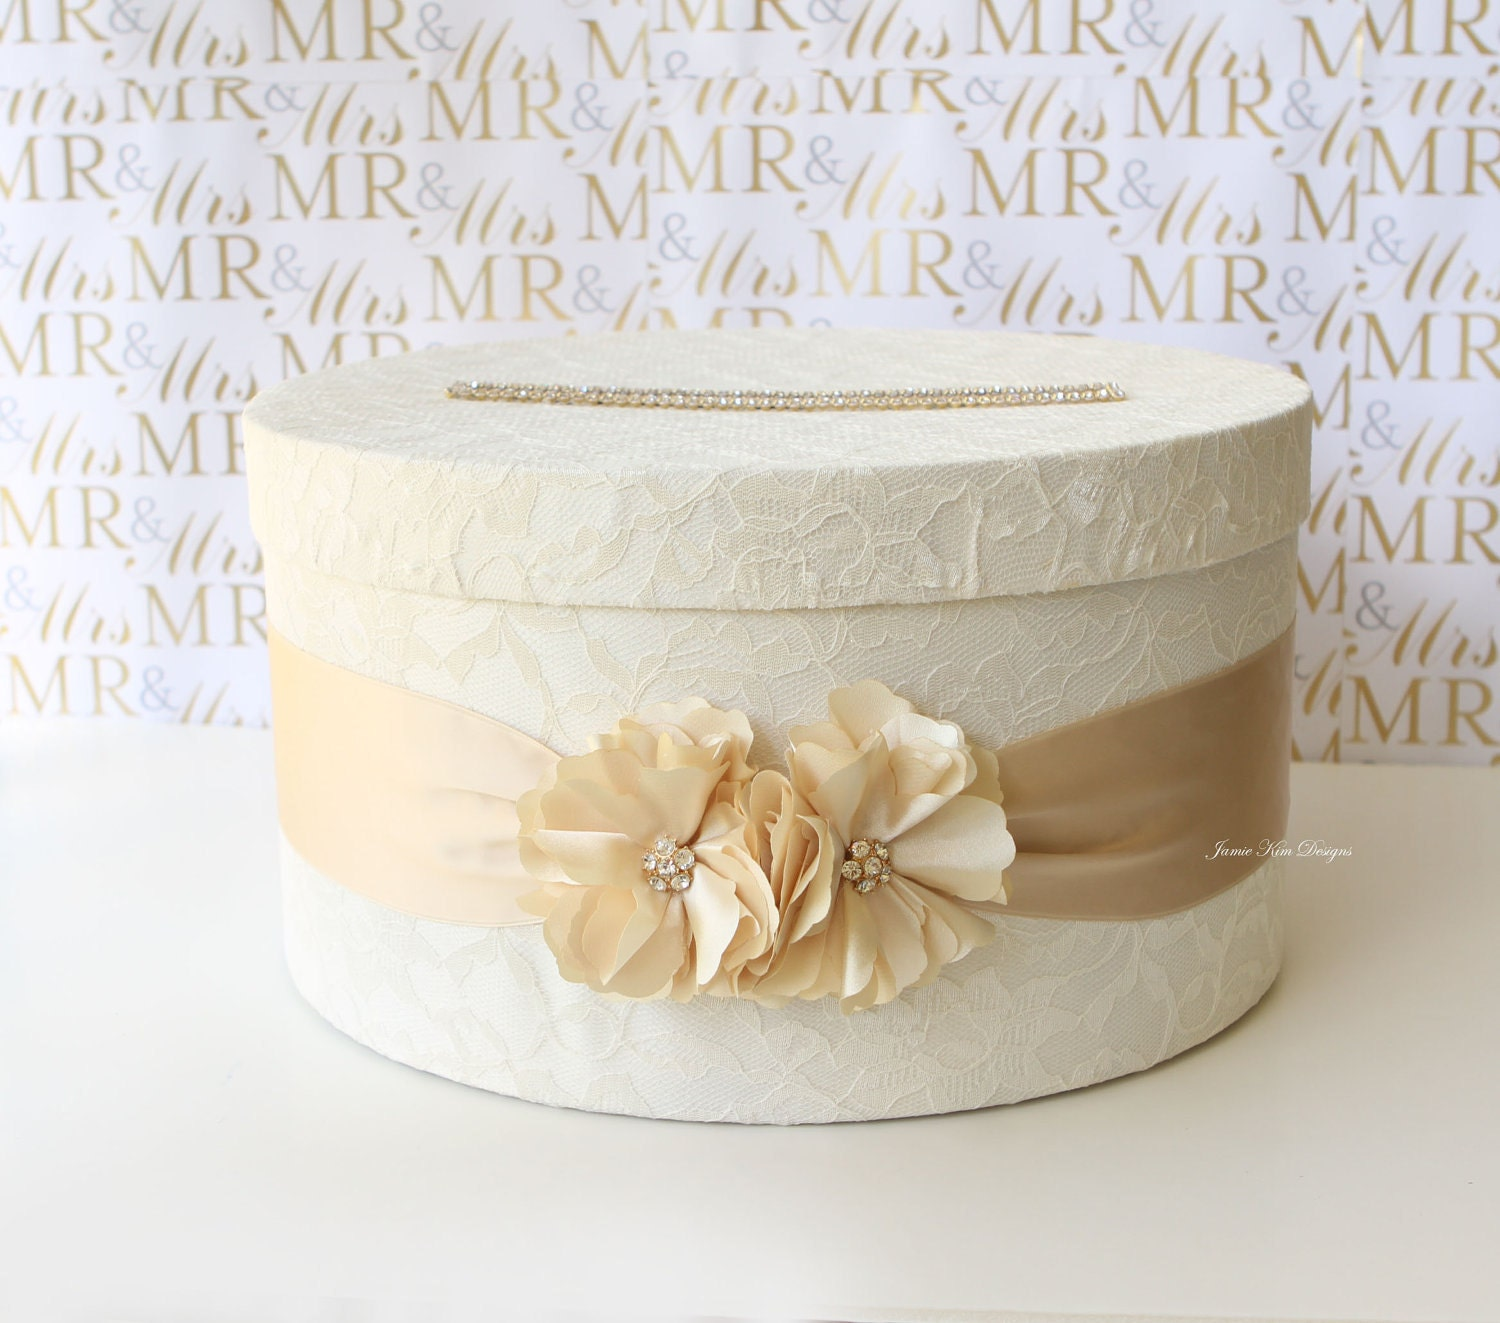 Wedding Money Box: Elegant Wedding Card Box Money Box Card Holder Custom Made To